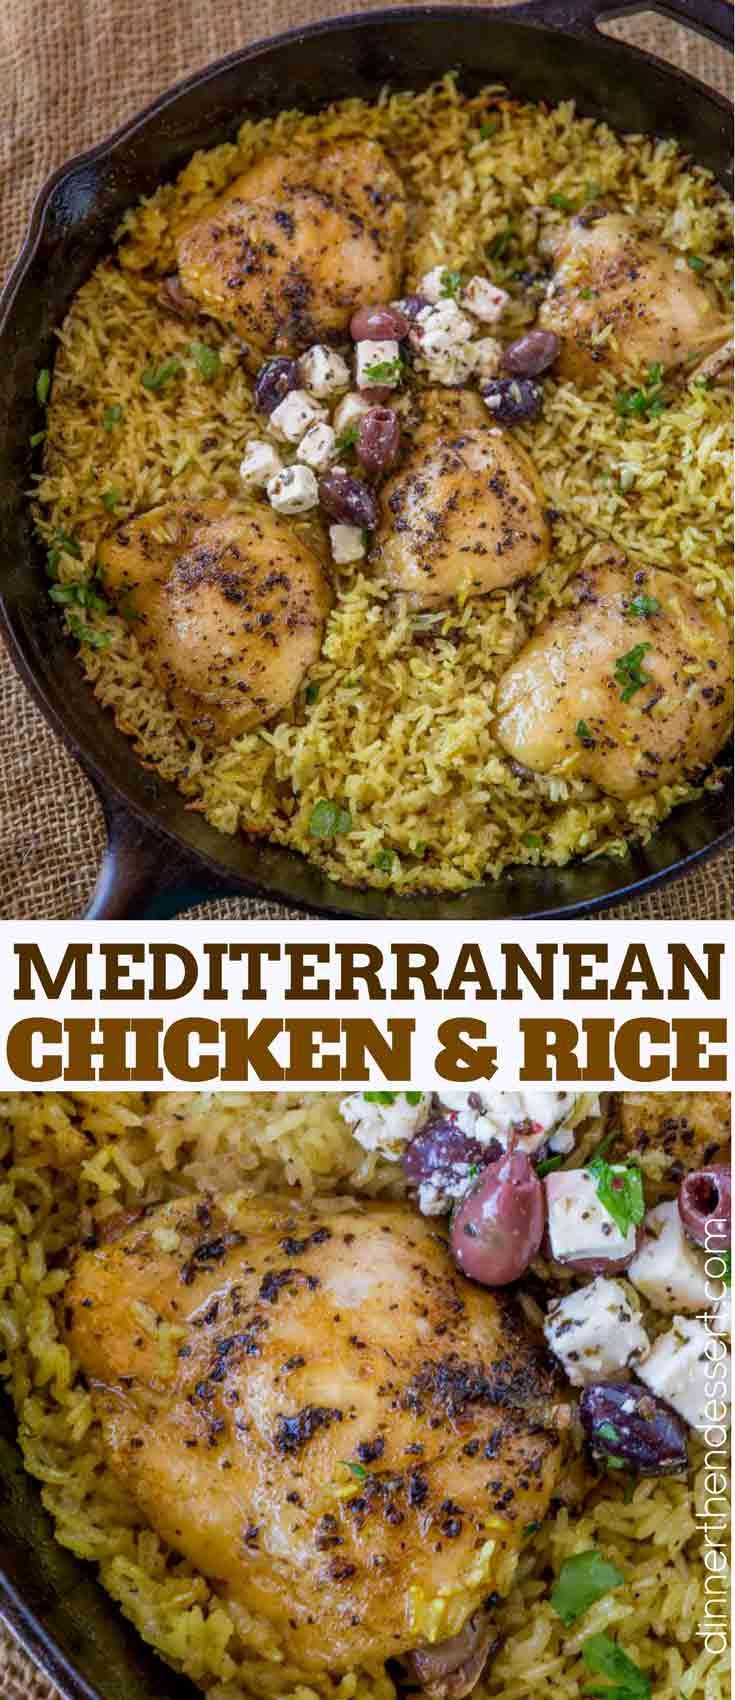 One Pot Mediterranean Chicken and Rice made with chicken thighs and turmeric seasoned rice baked in the oven until crispy and tender.